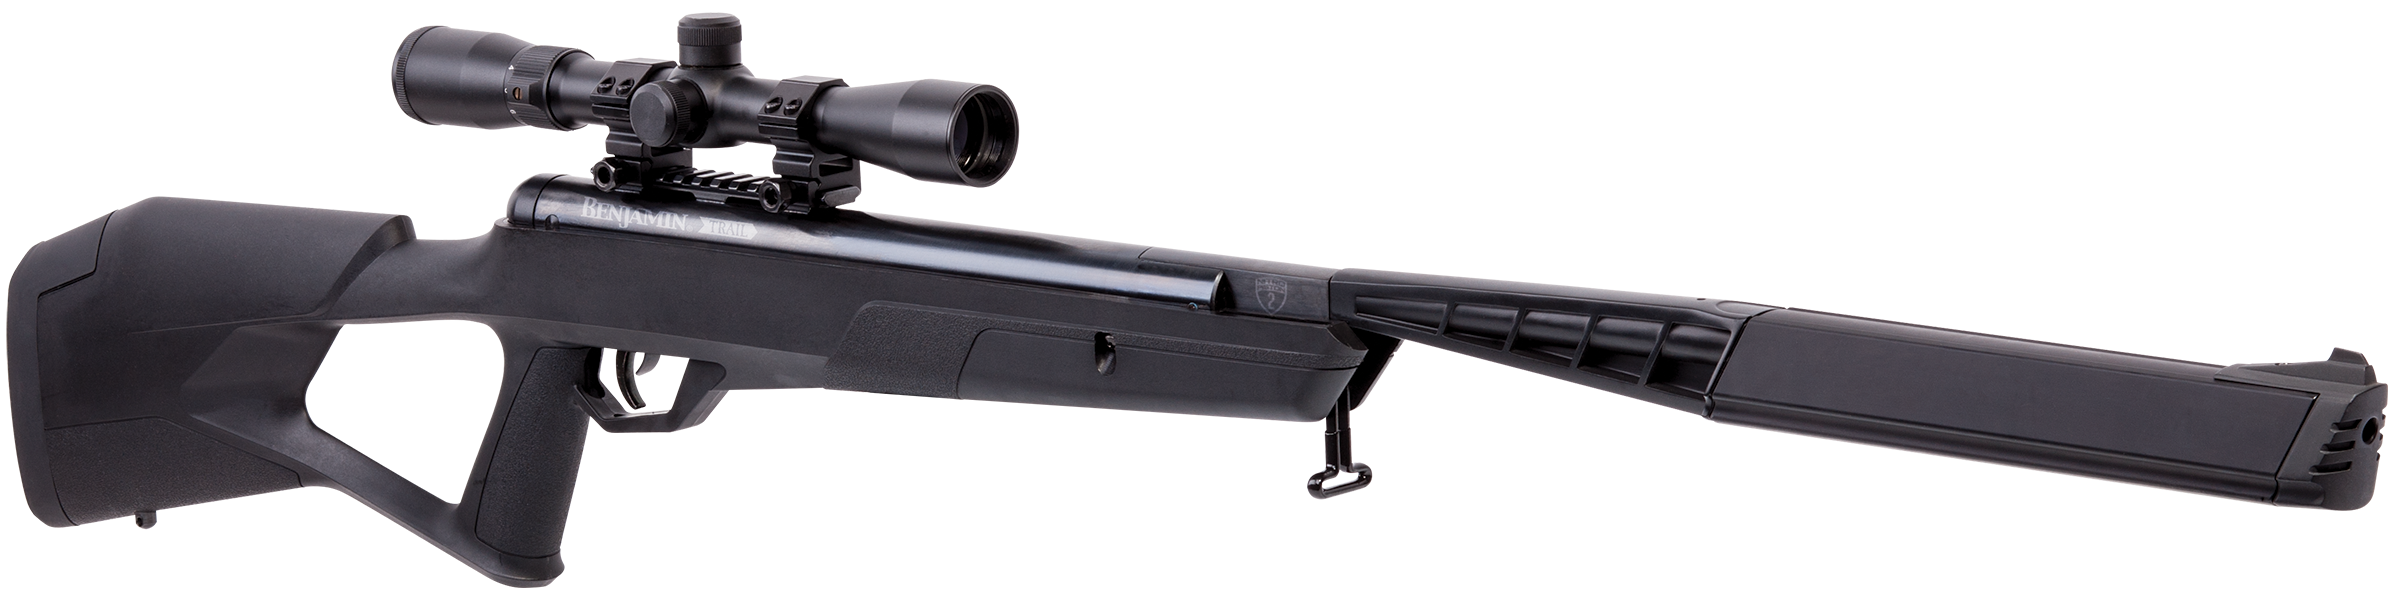 Benjamin BMN2Q7SX Mayhem Air Rifle Break Open .177 Pellet/BB Black